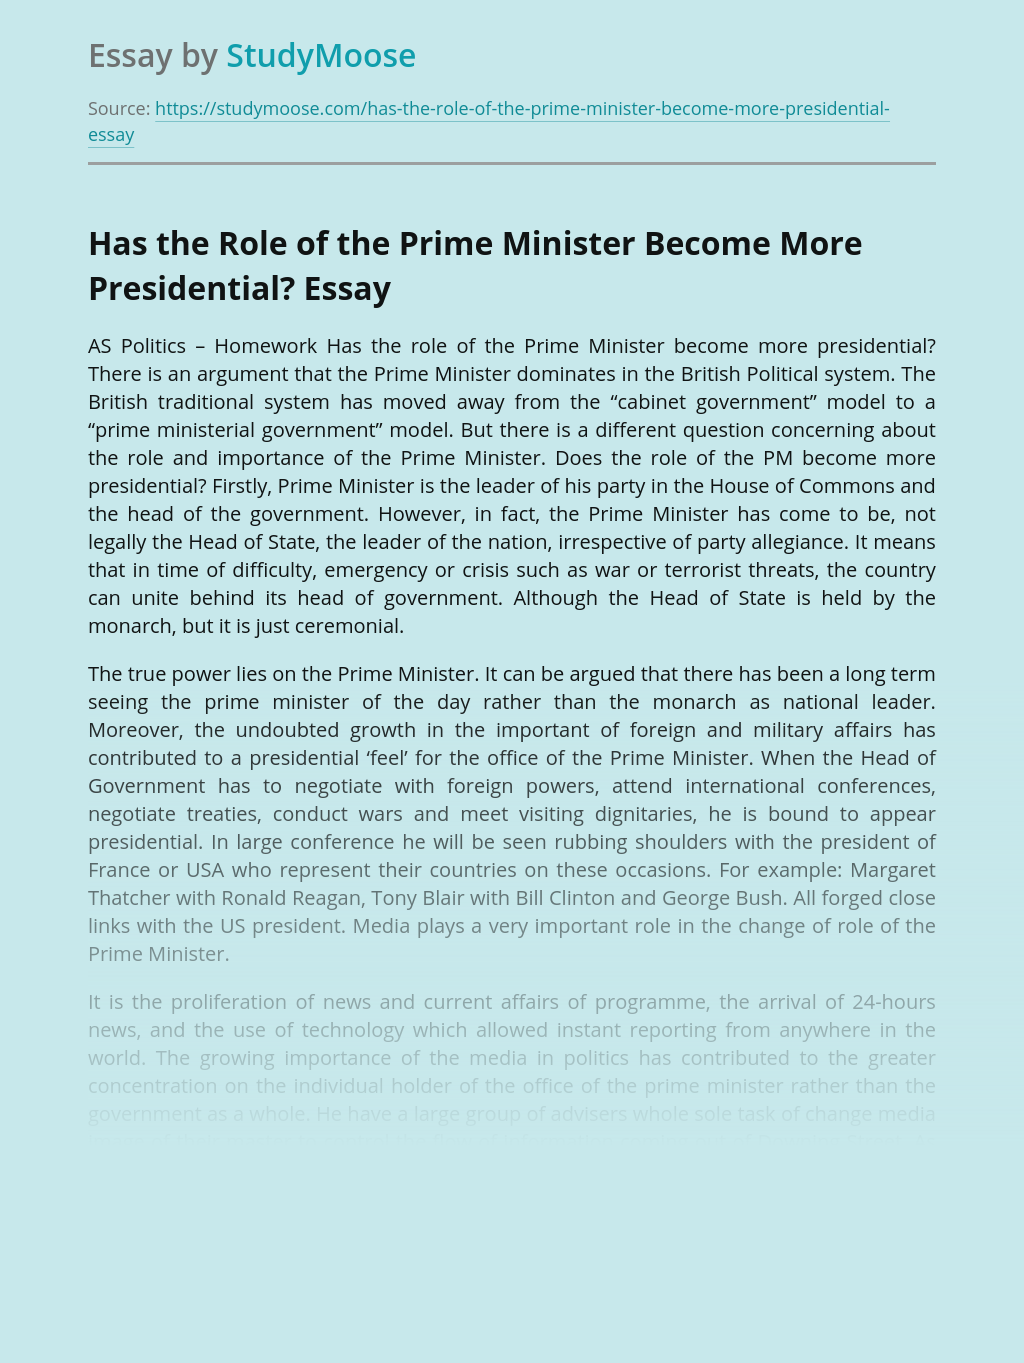 Has the Role of the Prime Minister Become More Presidential?